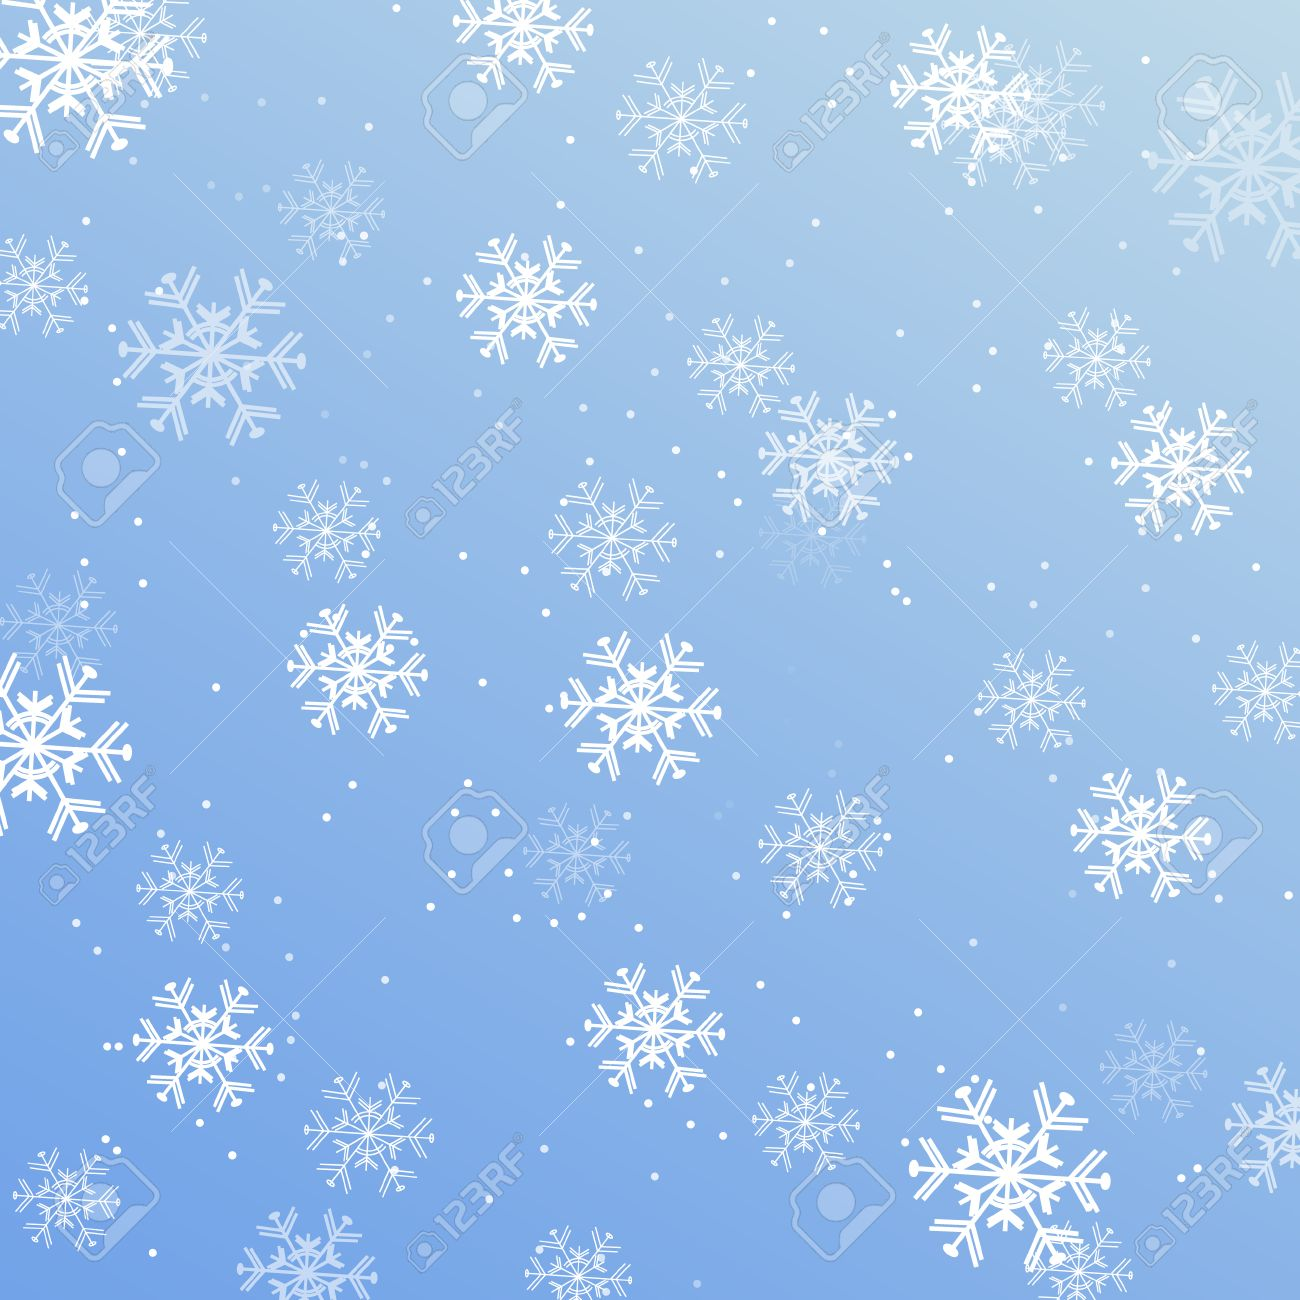 Christmas Wallpaper Background.Christmas Wallpaper Background With Snowflakes